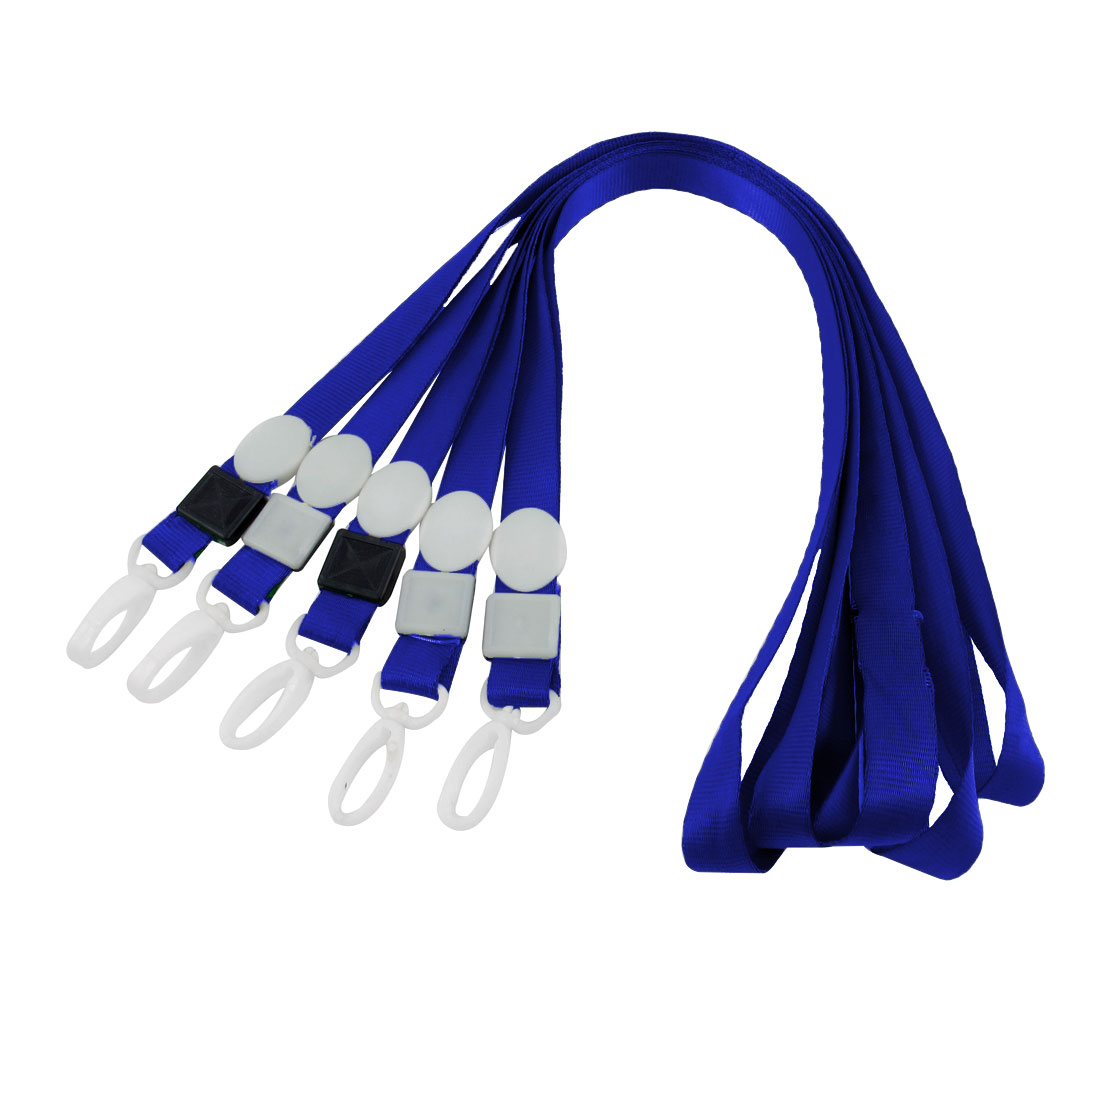 Plastic Swivel Clip ID Pass Card Keys Badge Holder Lanyard Neck Strap Blue 5pcs